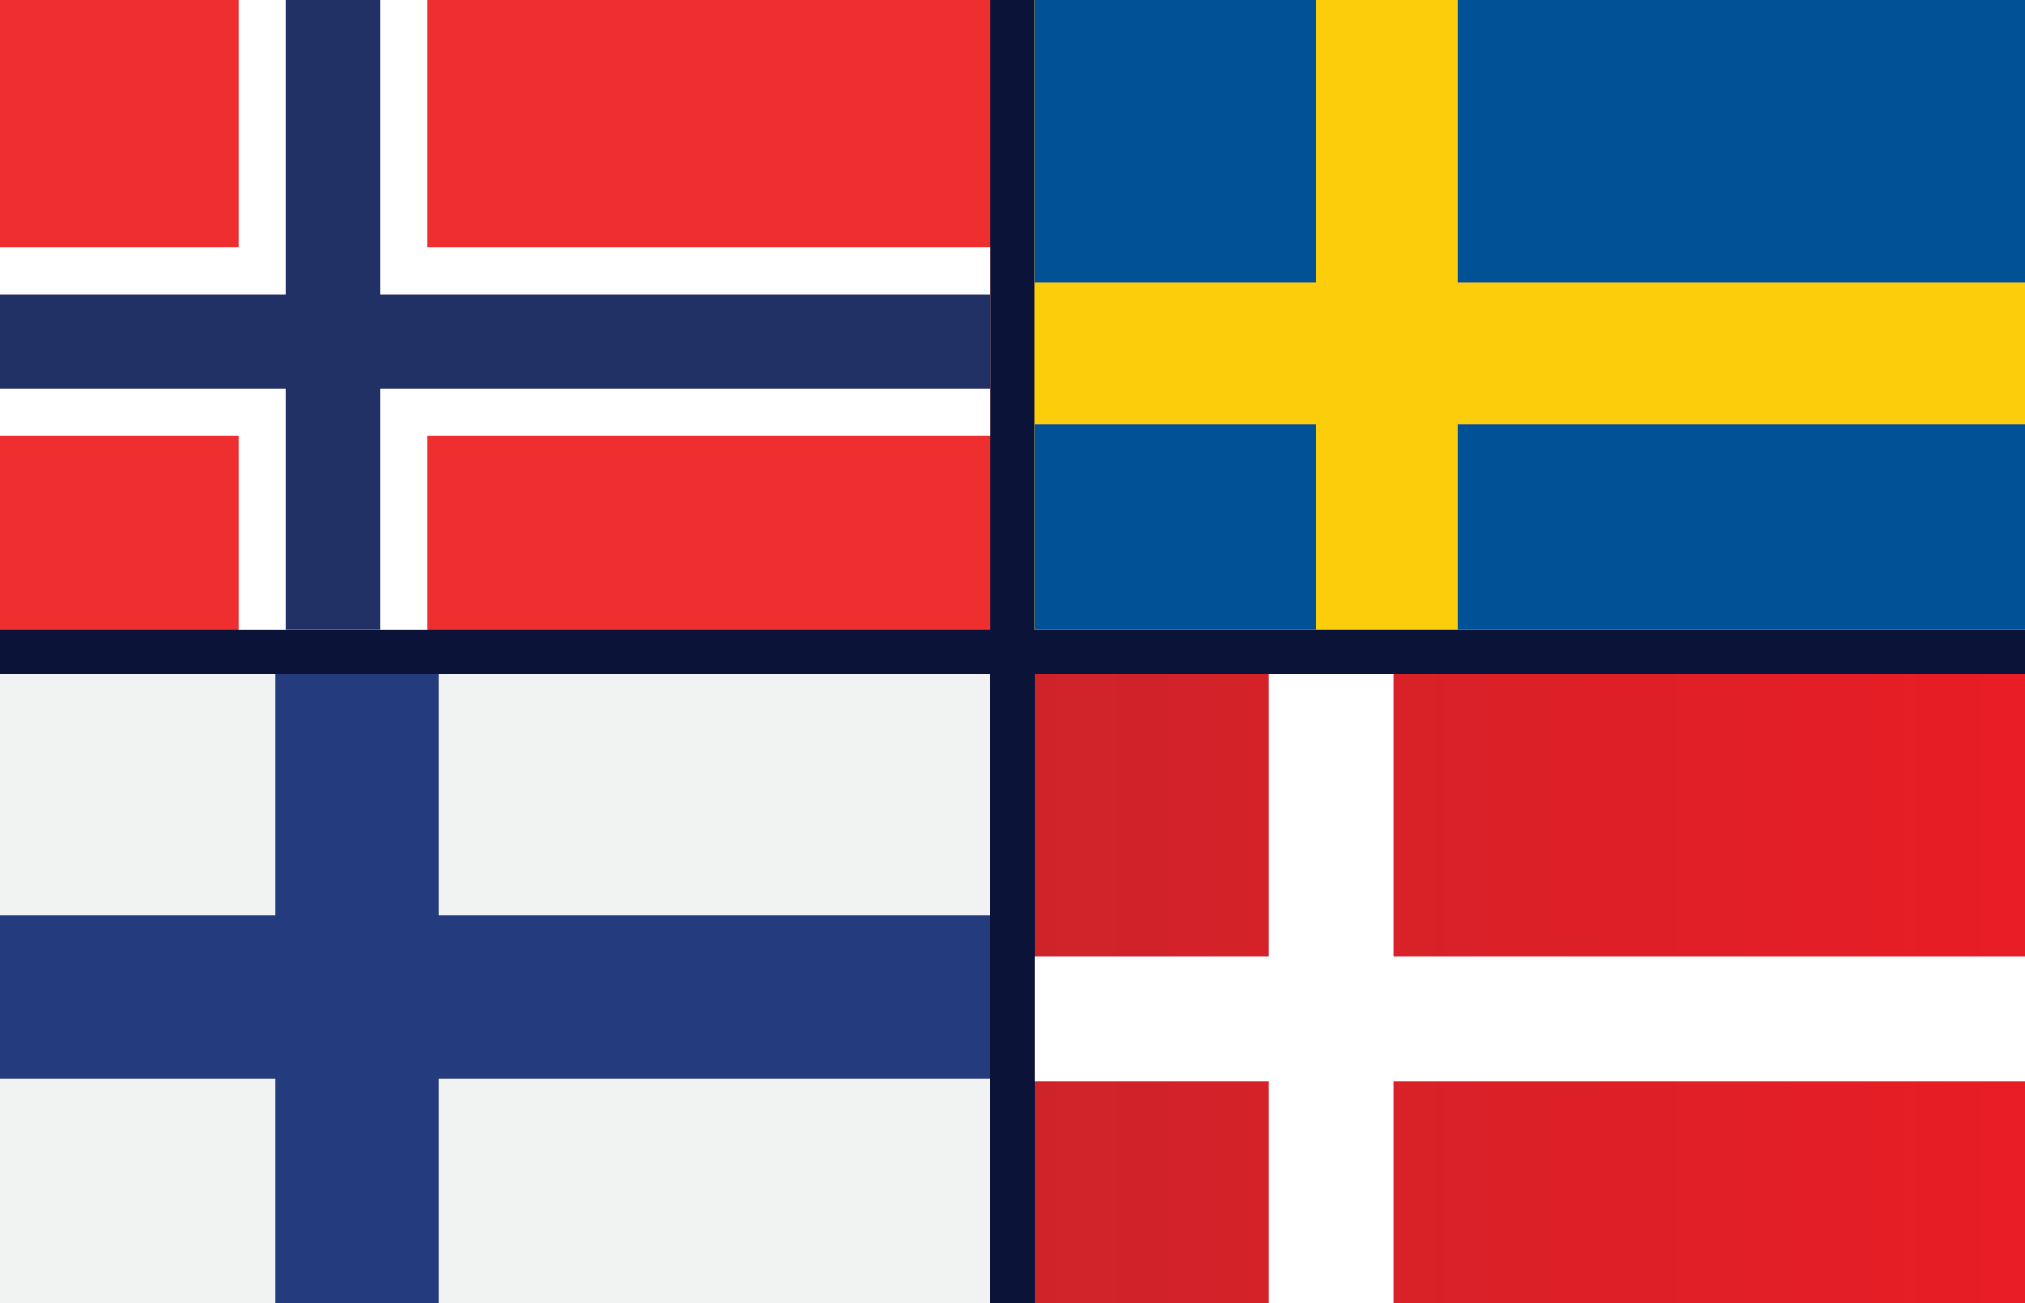 Global Payroll Taxation and Compliance - Payroll in the Nordic: Denmark, Finland, Norway, and Sweden